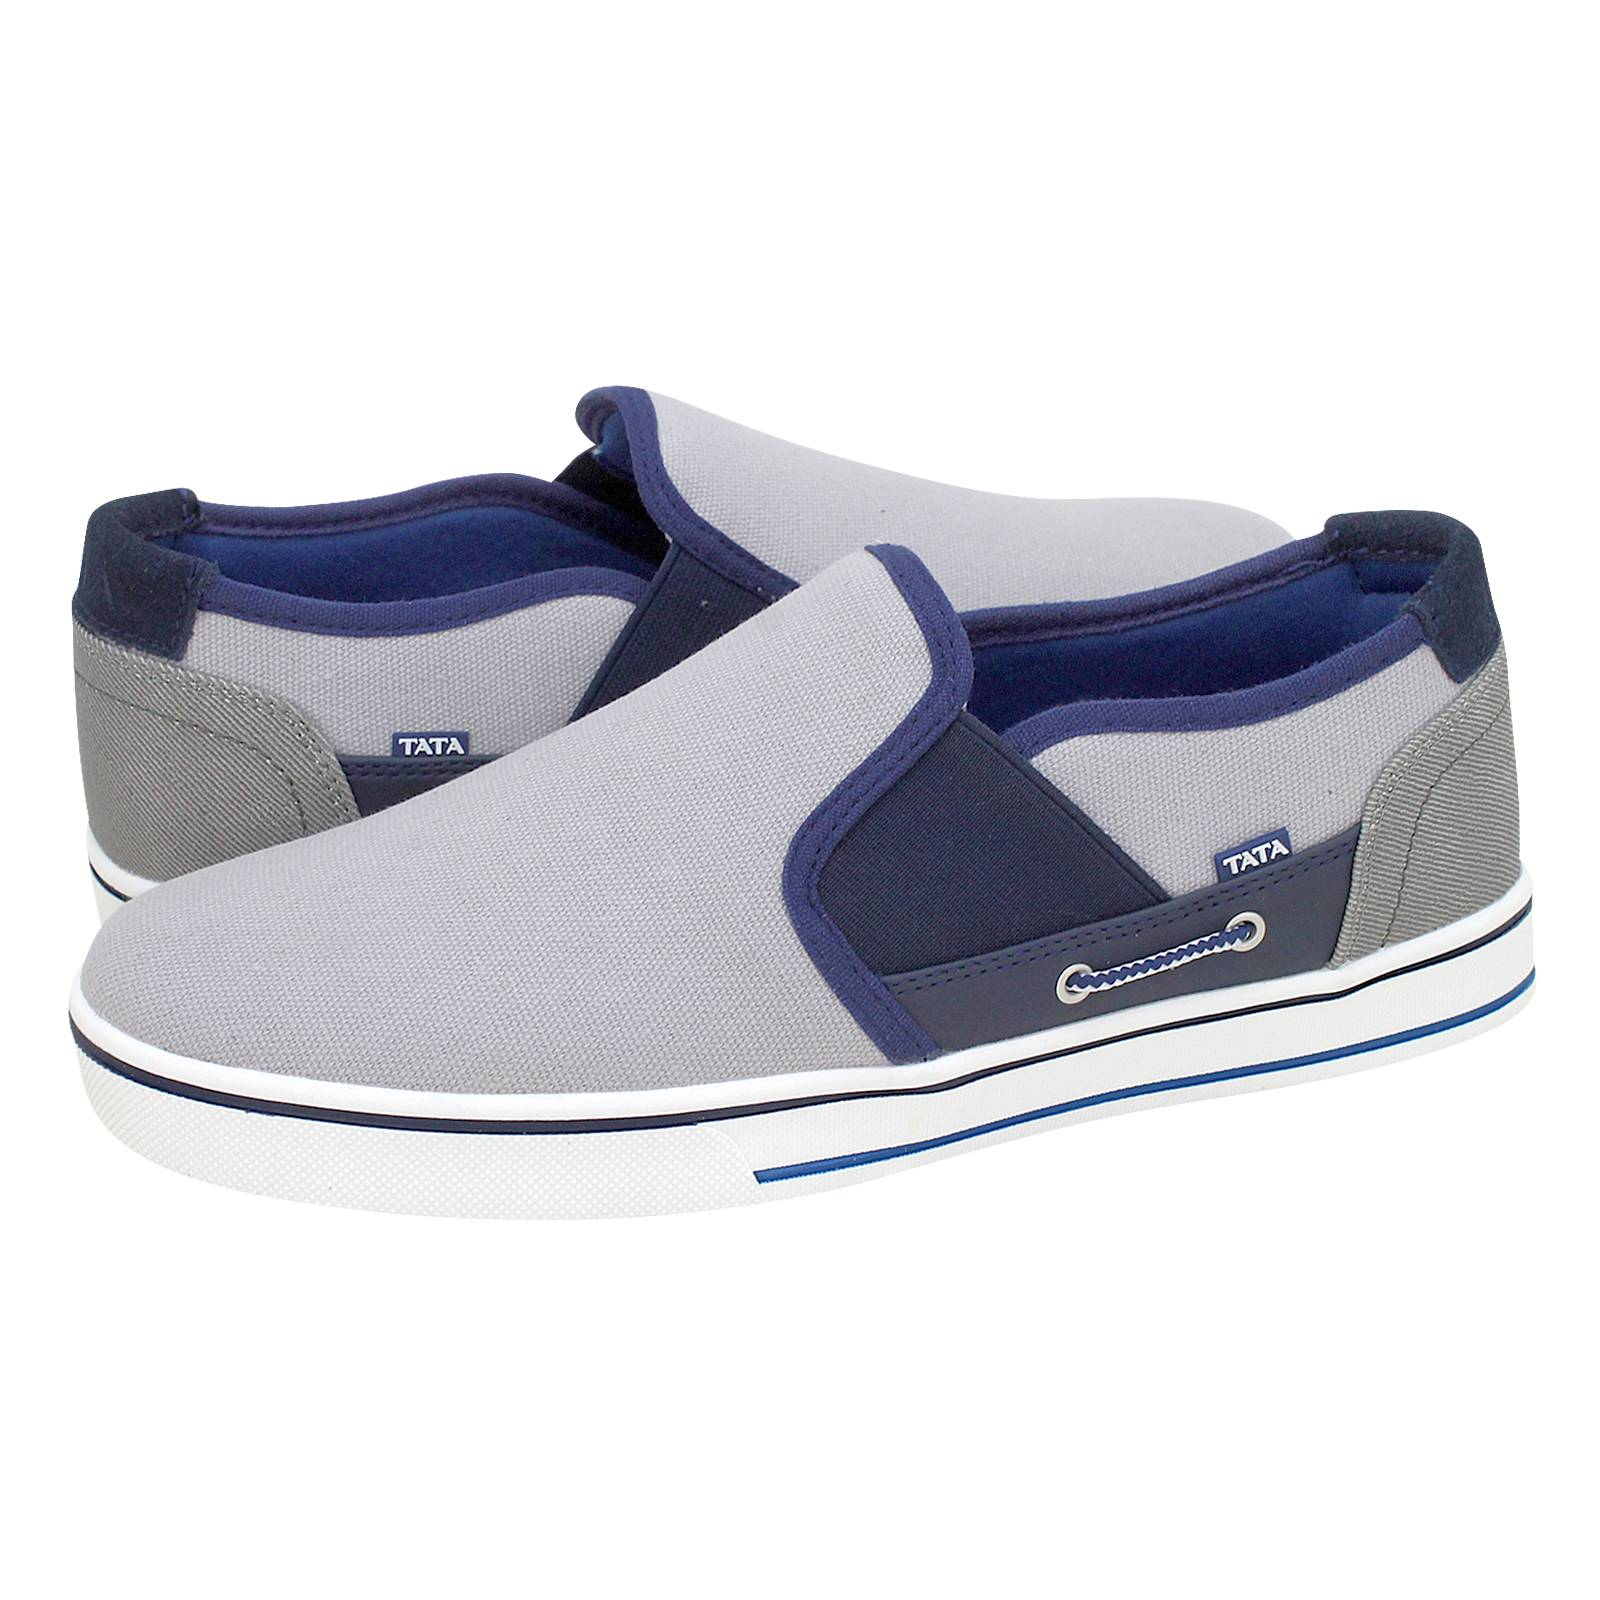 made fabric Camili The of Men's Tata casual shoes Club and 68FYSwPqvF